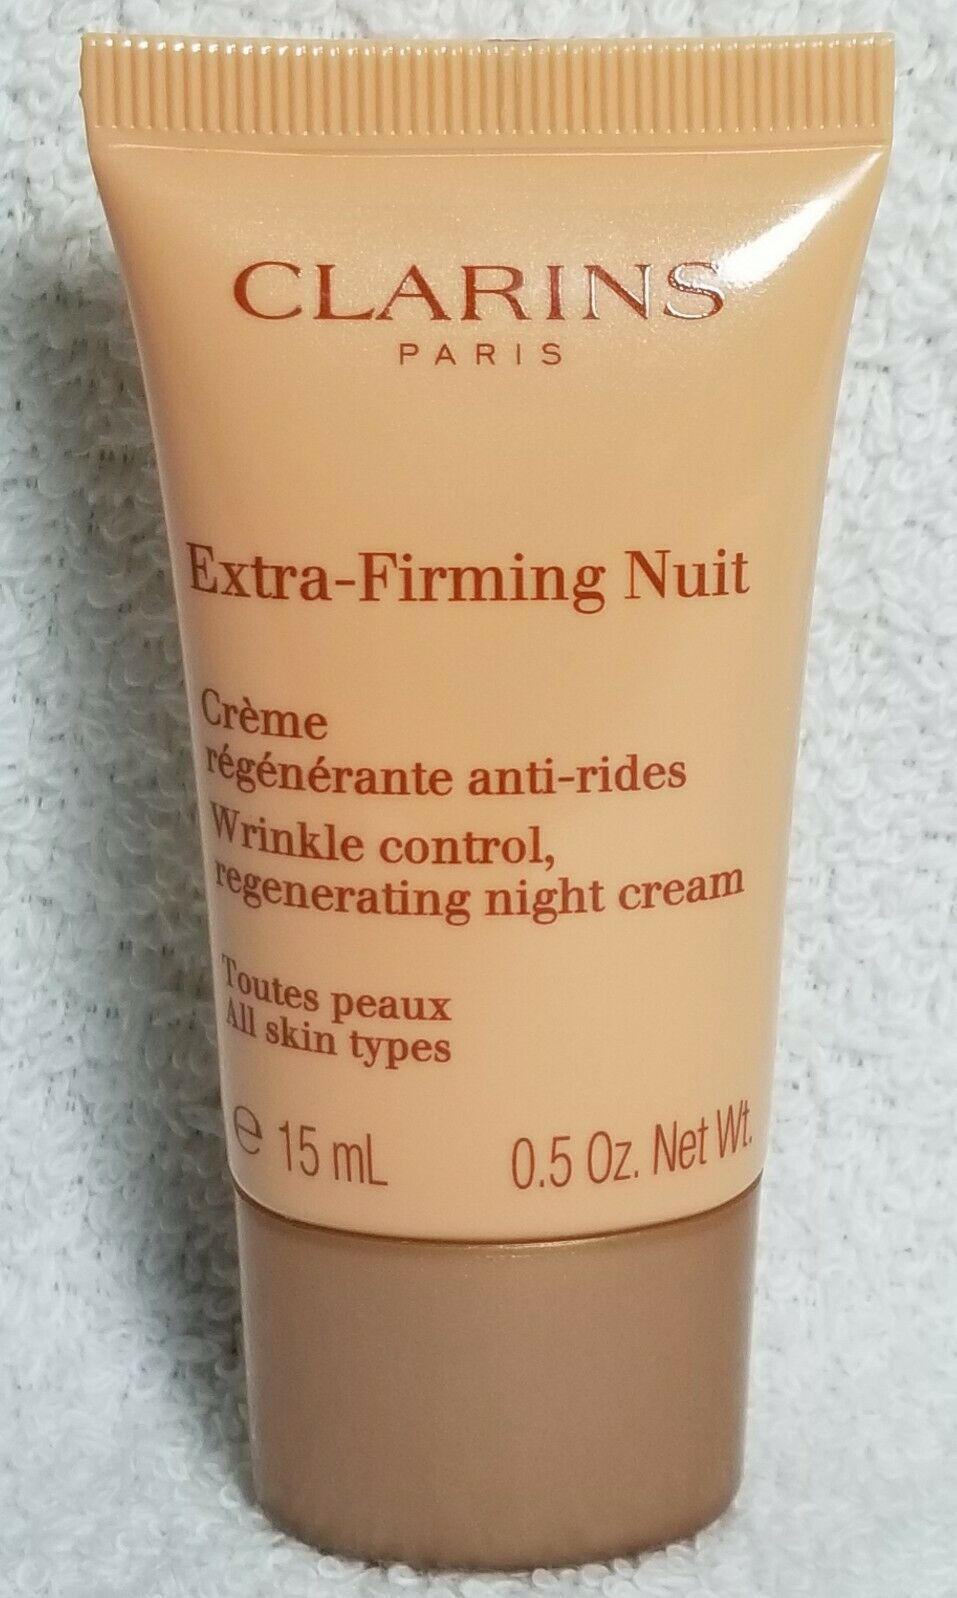 Primary image for Clarins EXTRA-FIRMING NUIT Regenerating Night Cream Wrinkle Tube .5 oz/15mL New